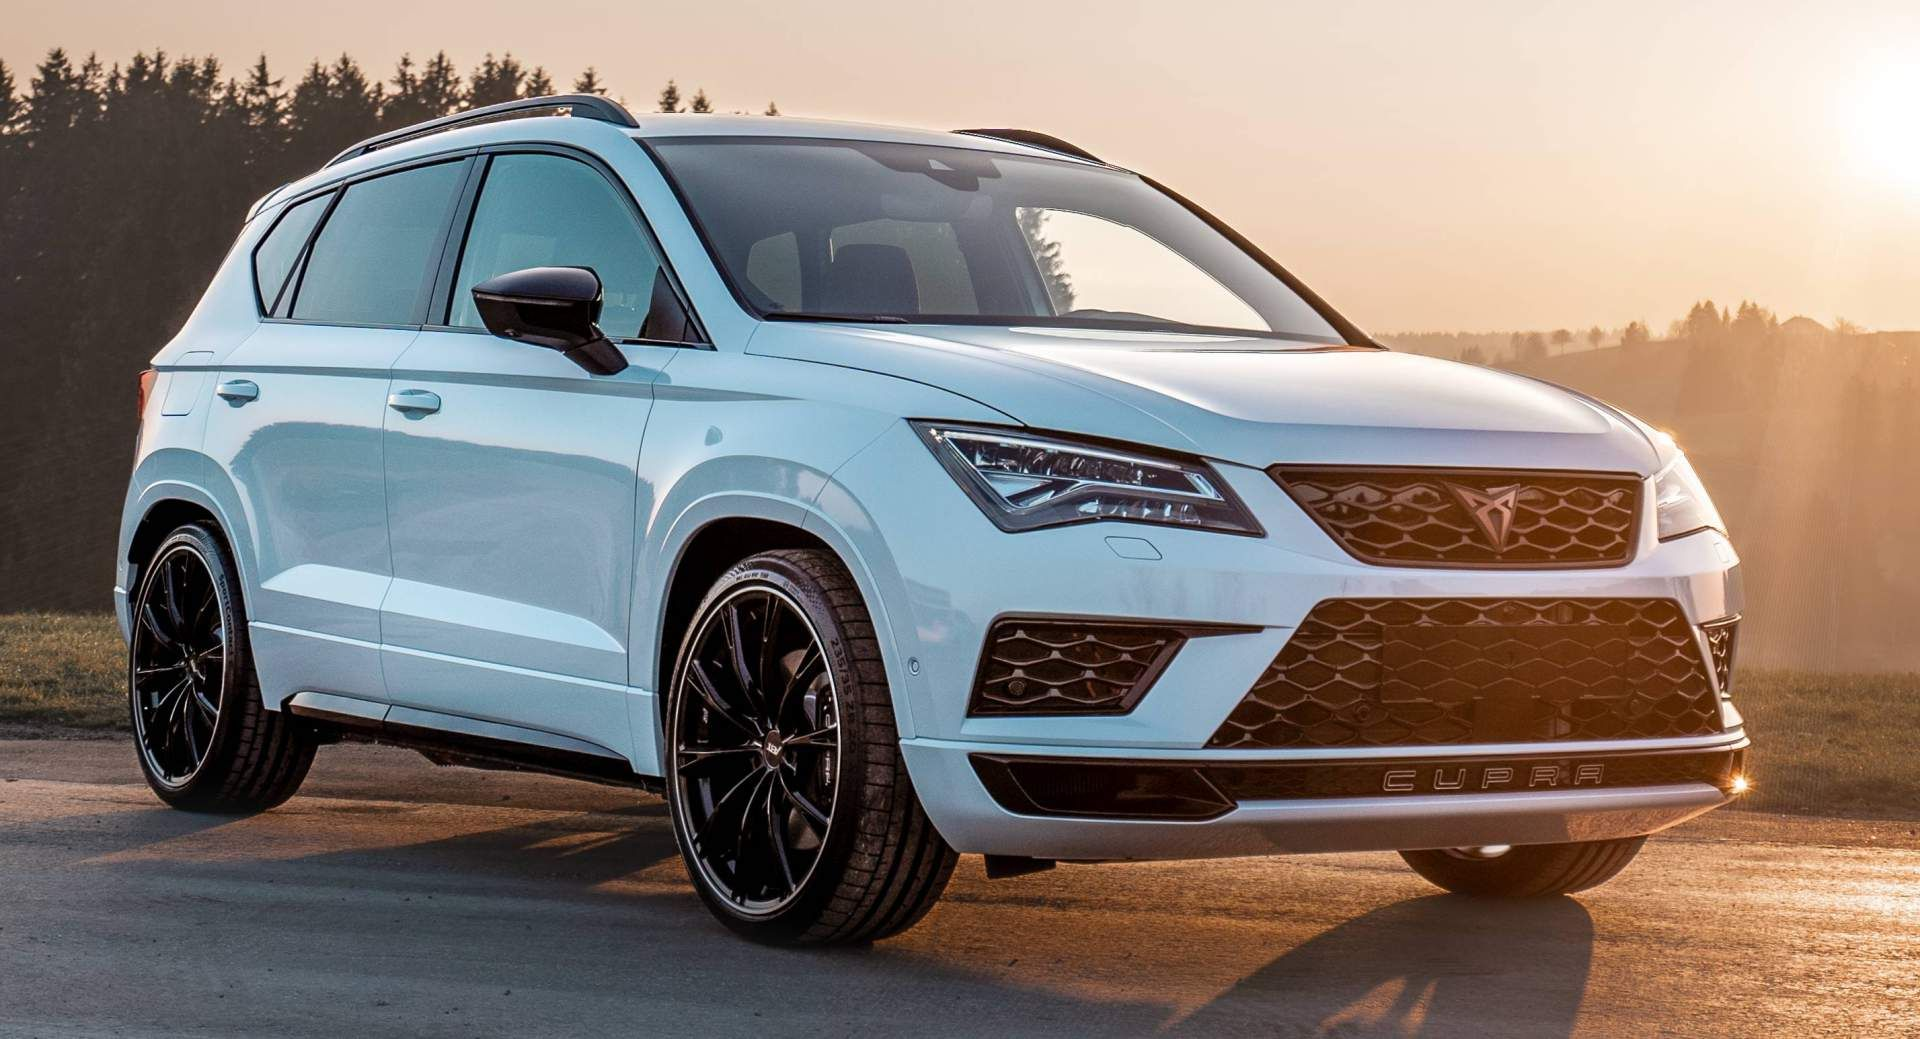 Abt Sportsline Bringing 350 Ps Cupra Ateca To Essen Motor Show Carscoops Beach Chair Umbrella Motor Suv Car